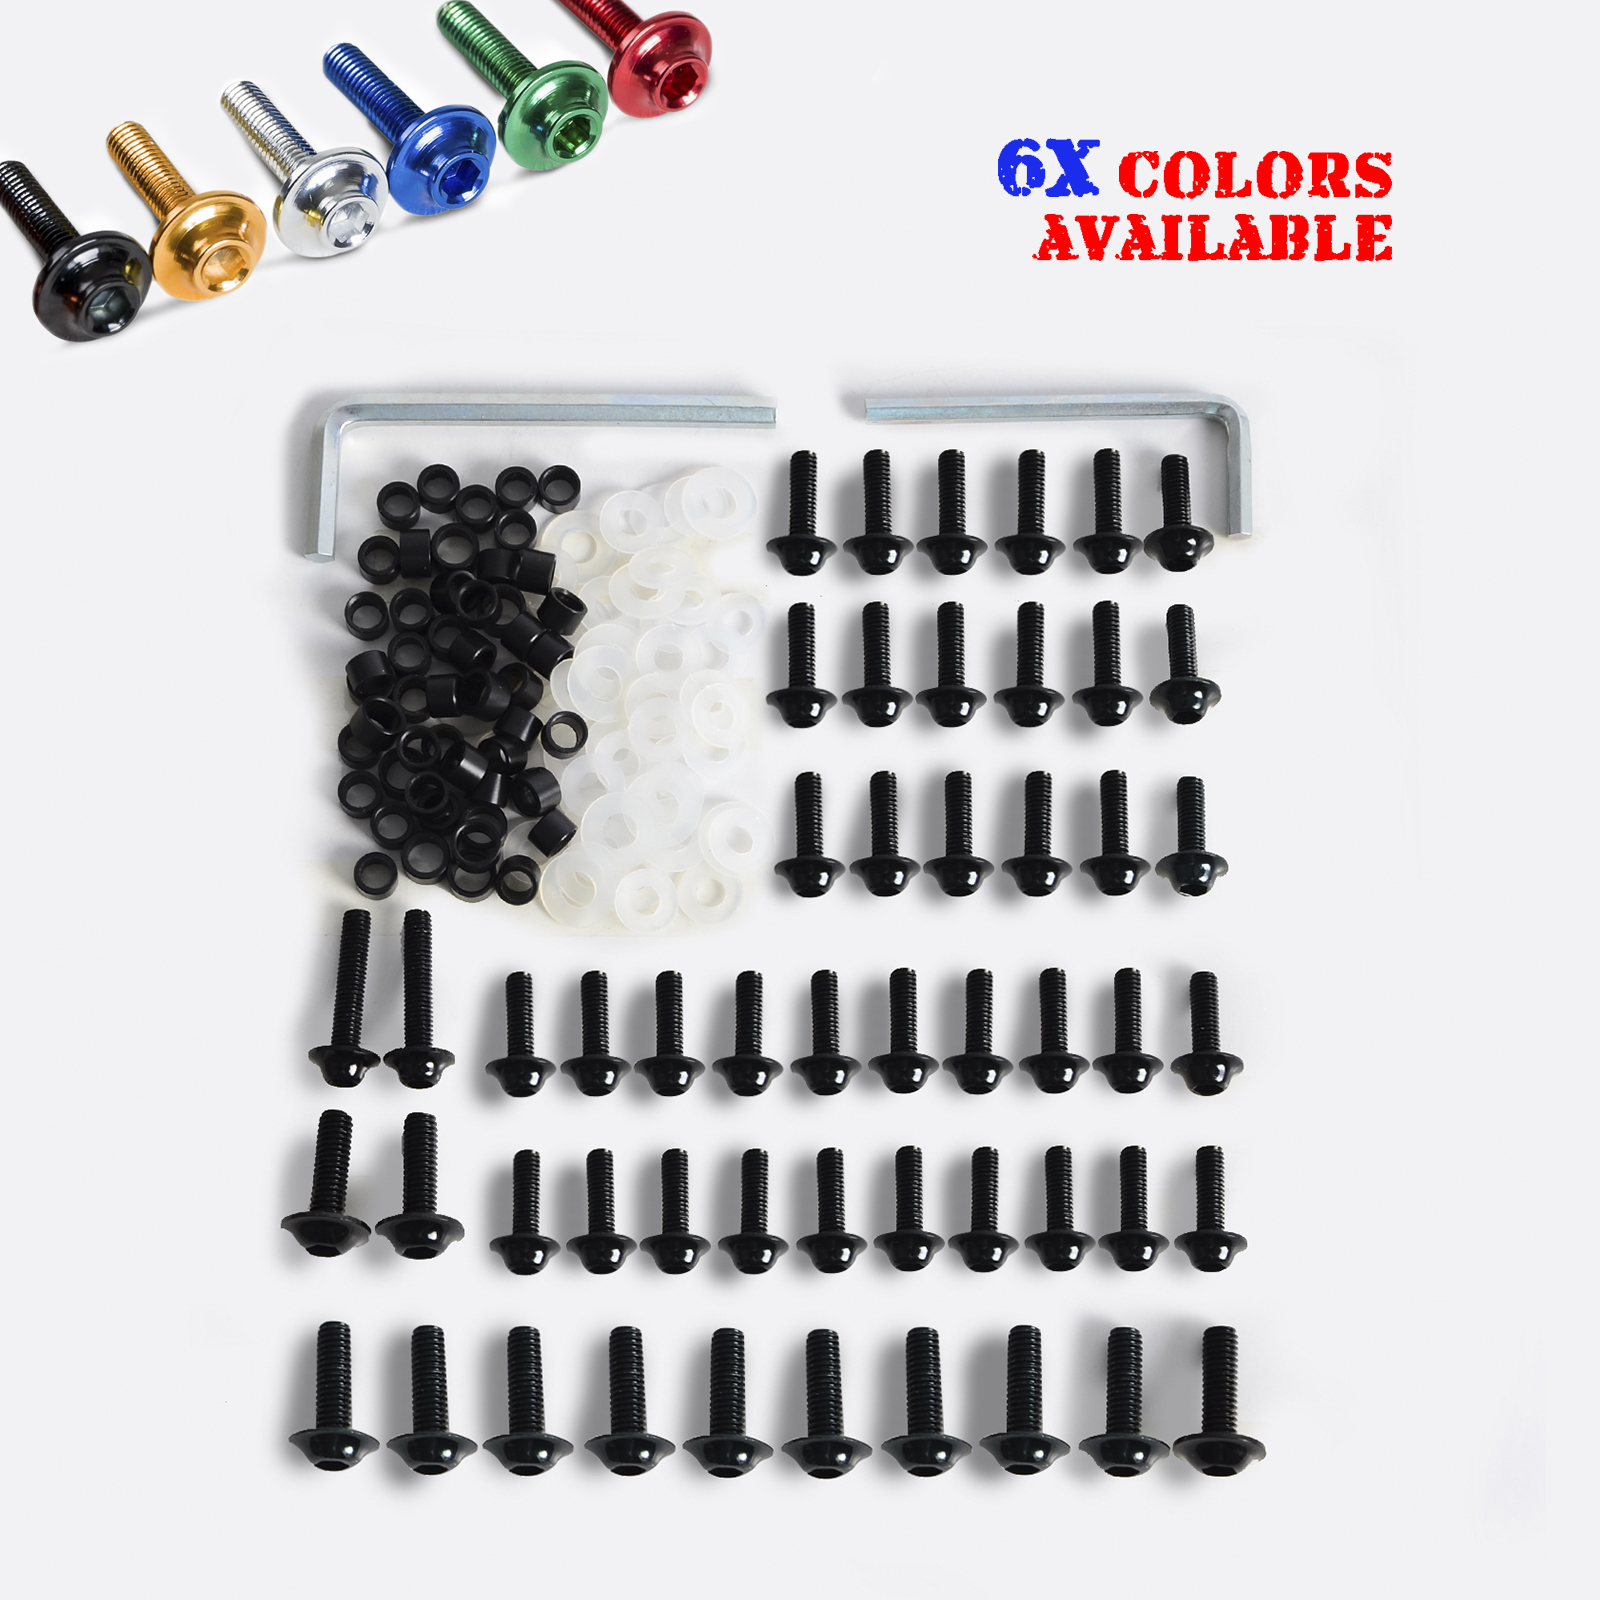 Fairing Bolts Kit Fastener Clips Screws For Yamaha YZF R6 1999-2002 Motocross Enduro Supermoto Dirt Bike Motorcycle kemimoto motorcycle yzf r6 complete fairing bolt screws kit for yamaha yzf r6 1999 2000 2001 2002 accessories